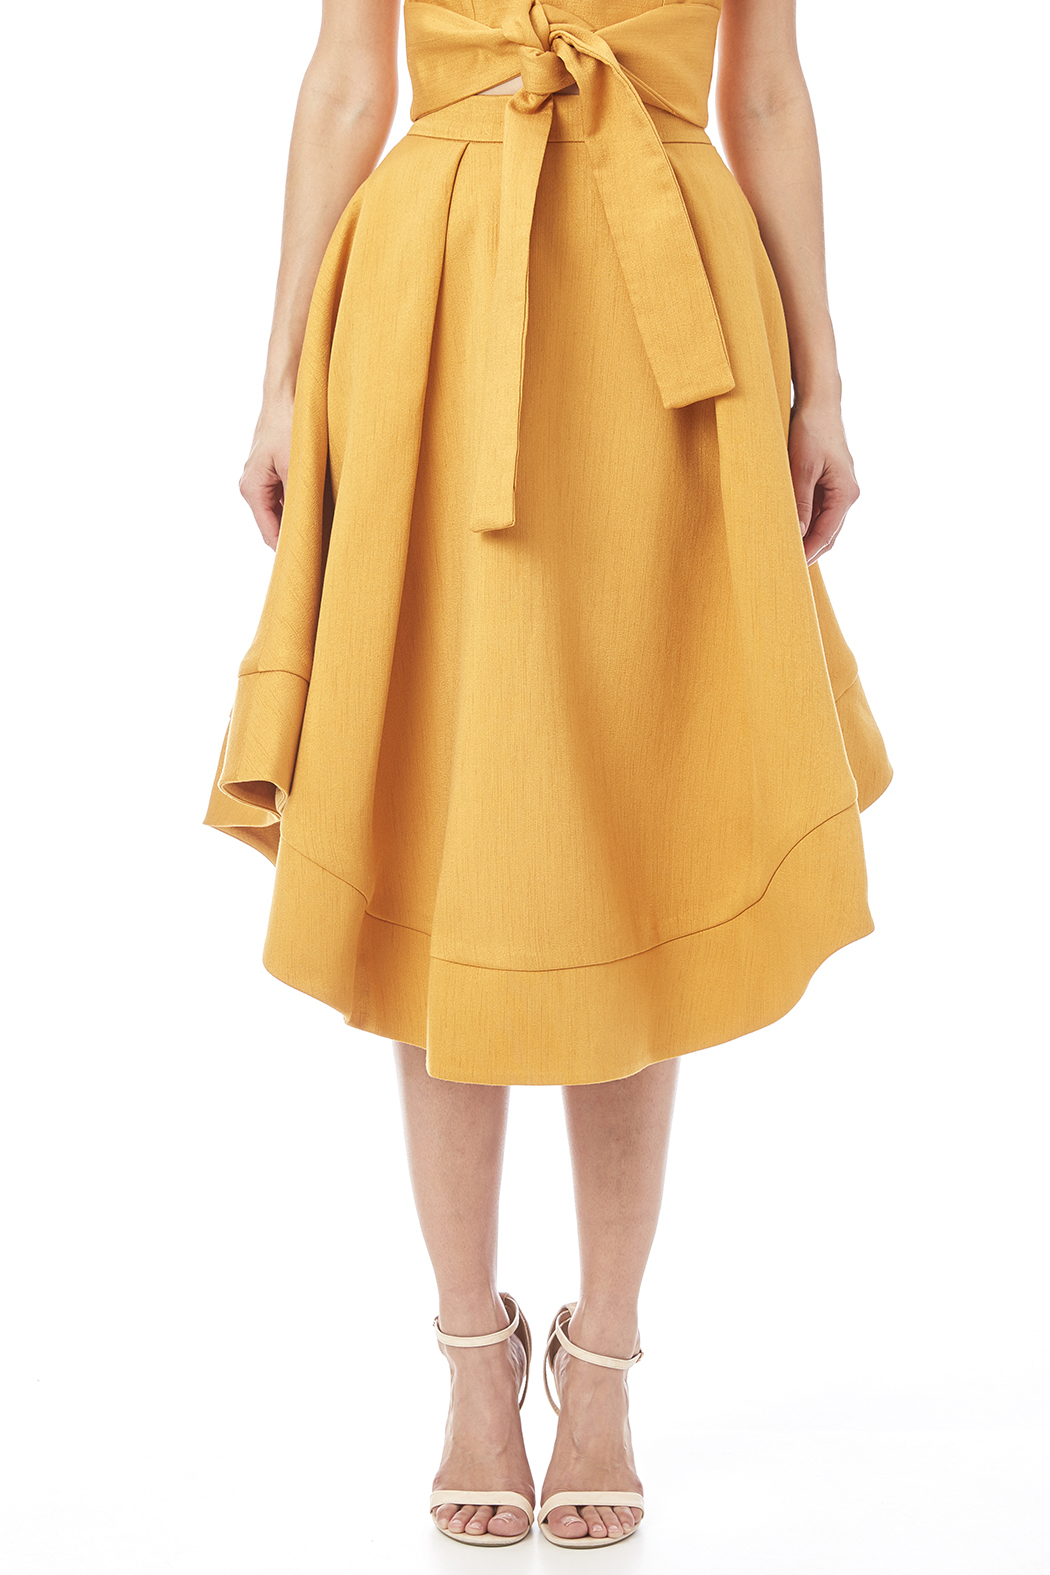 f6404e800a98 C/MEO COLLECTIVE Making Waves Skirt from San Francisco by Capulet ...